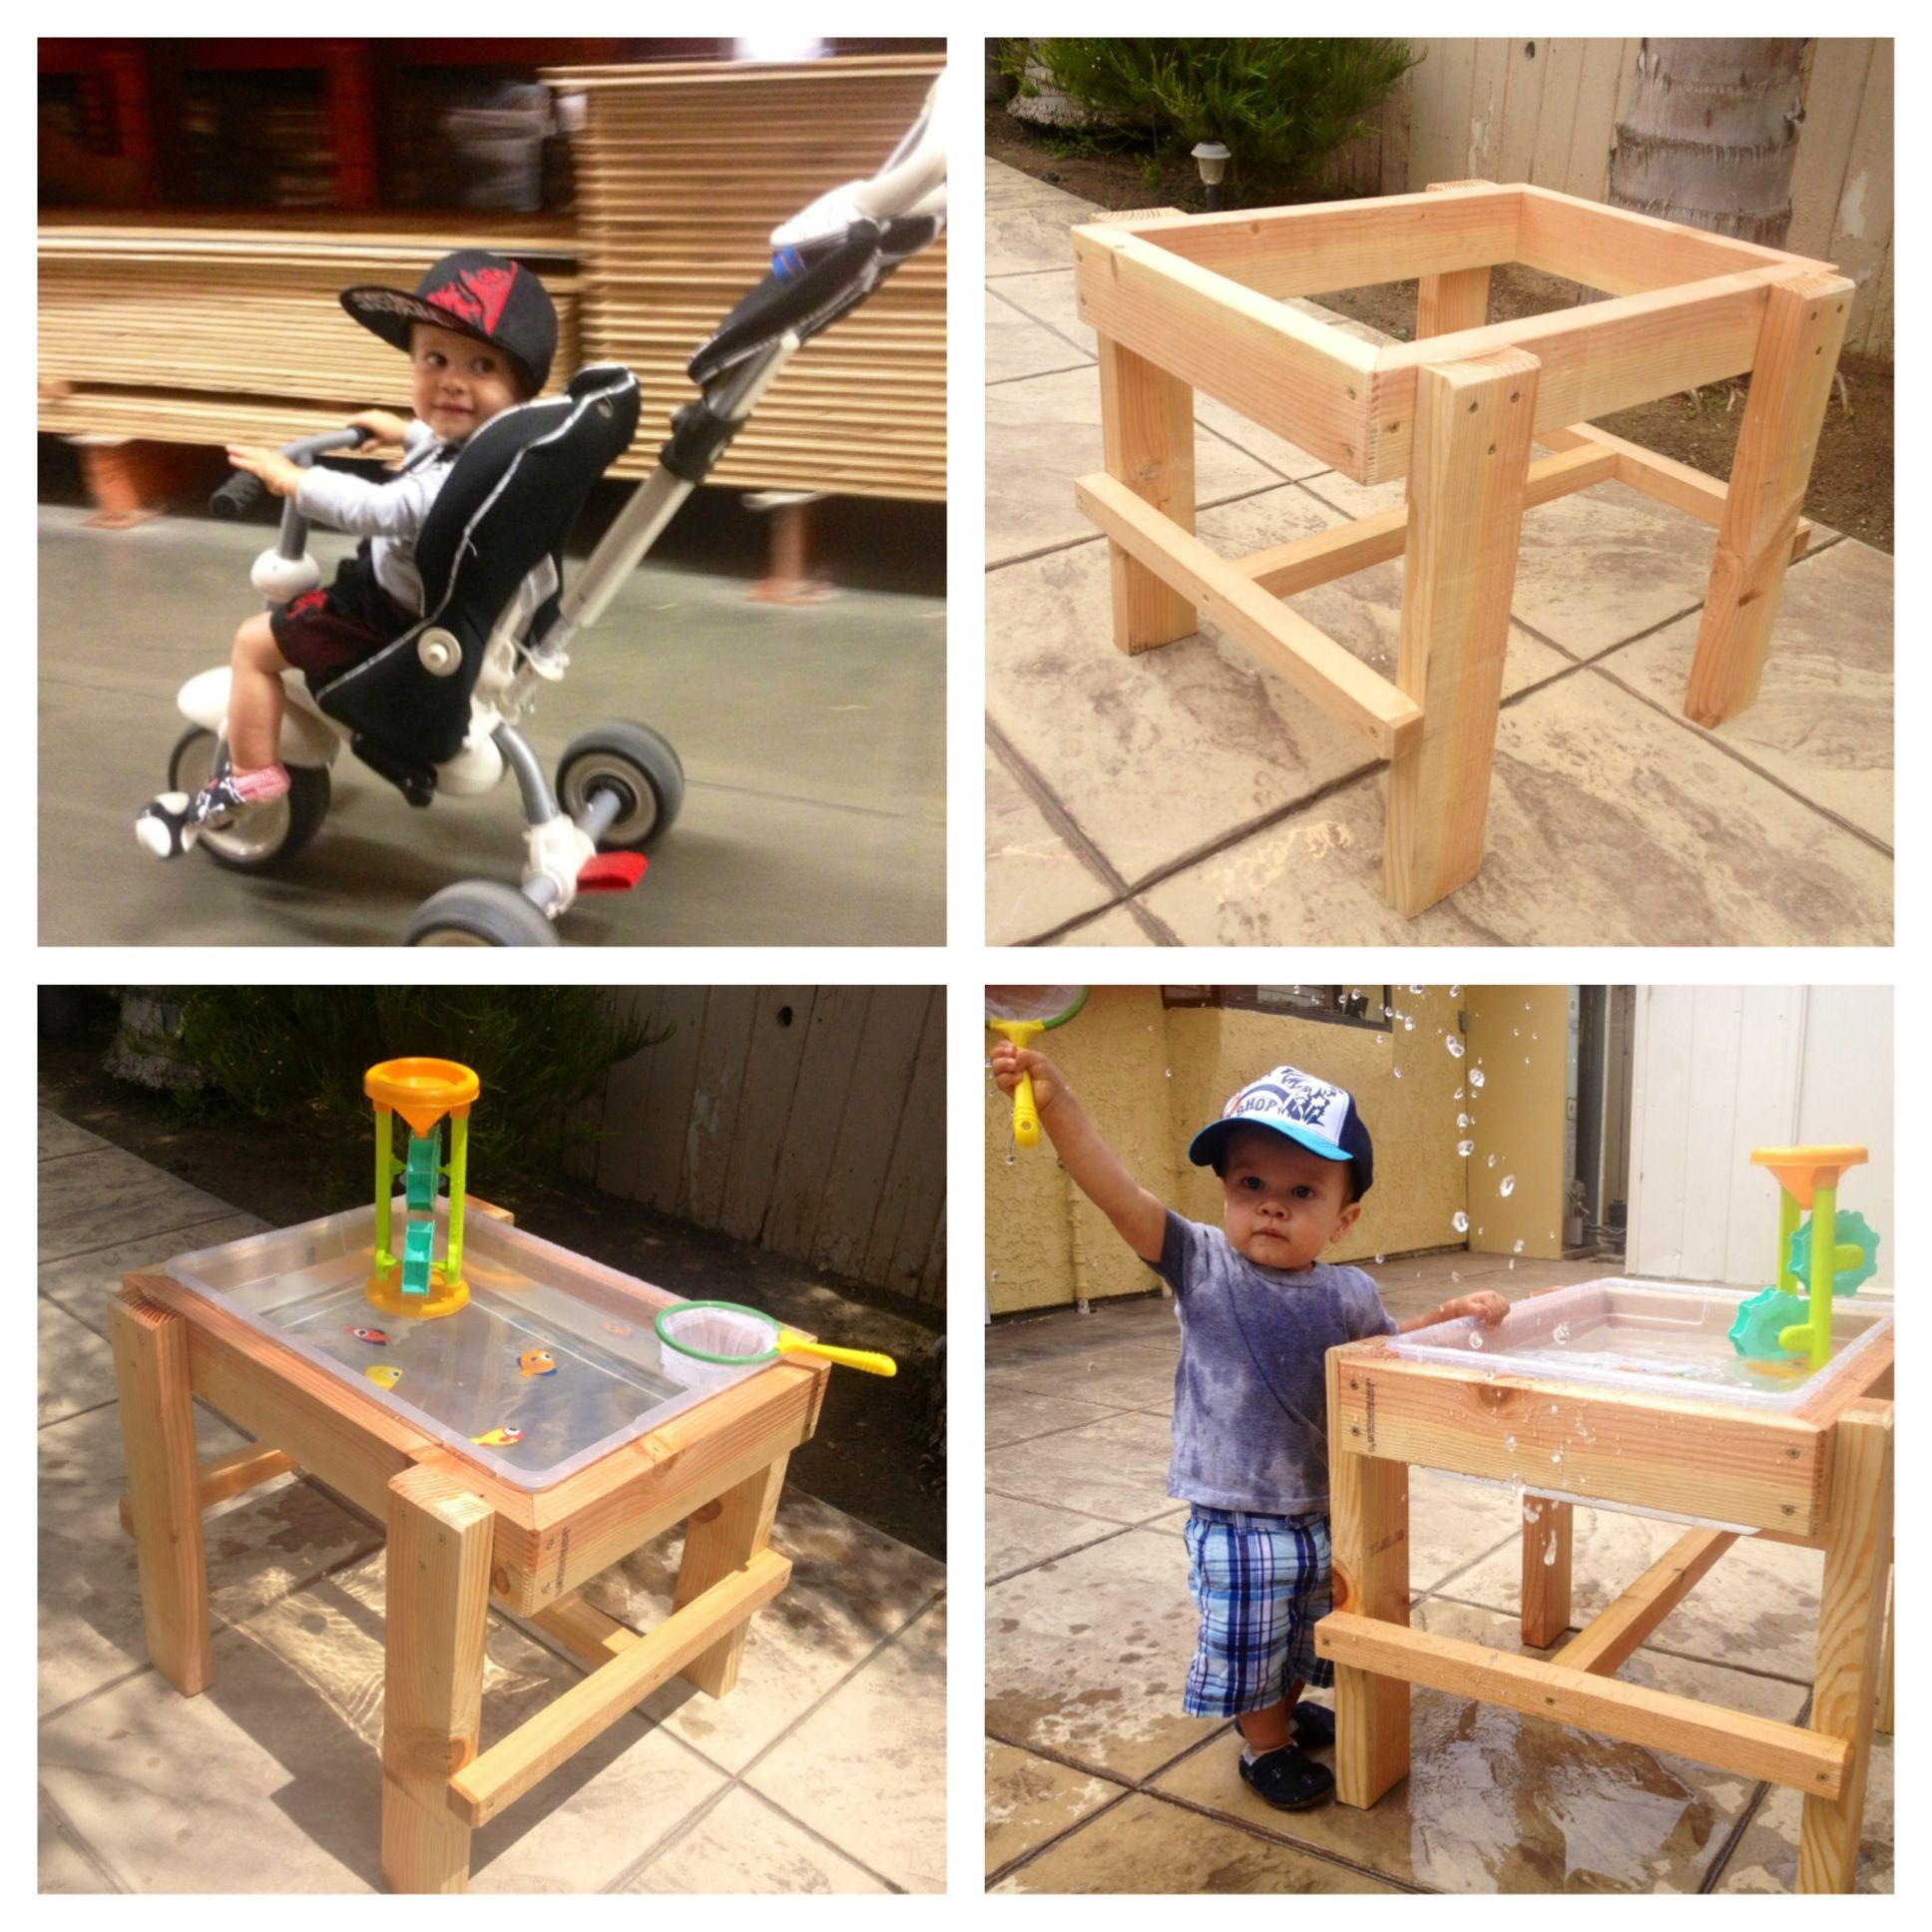 Exceptional DIY Water Table Under $20 Using Wood And A Rubbermaid Tub!